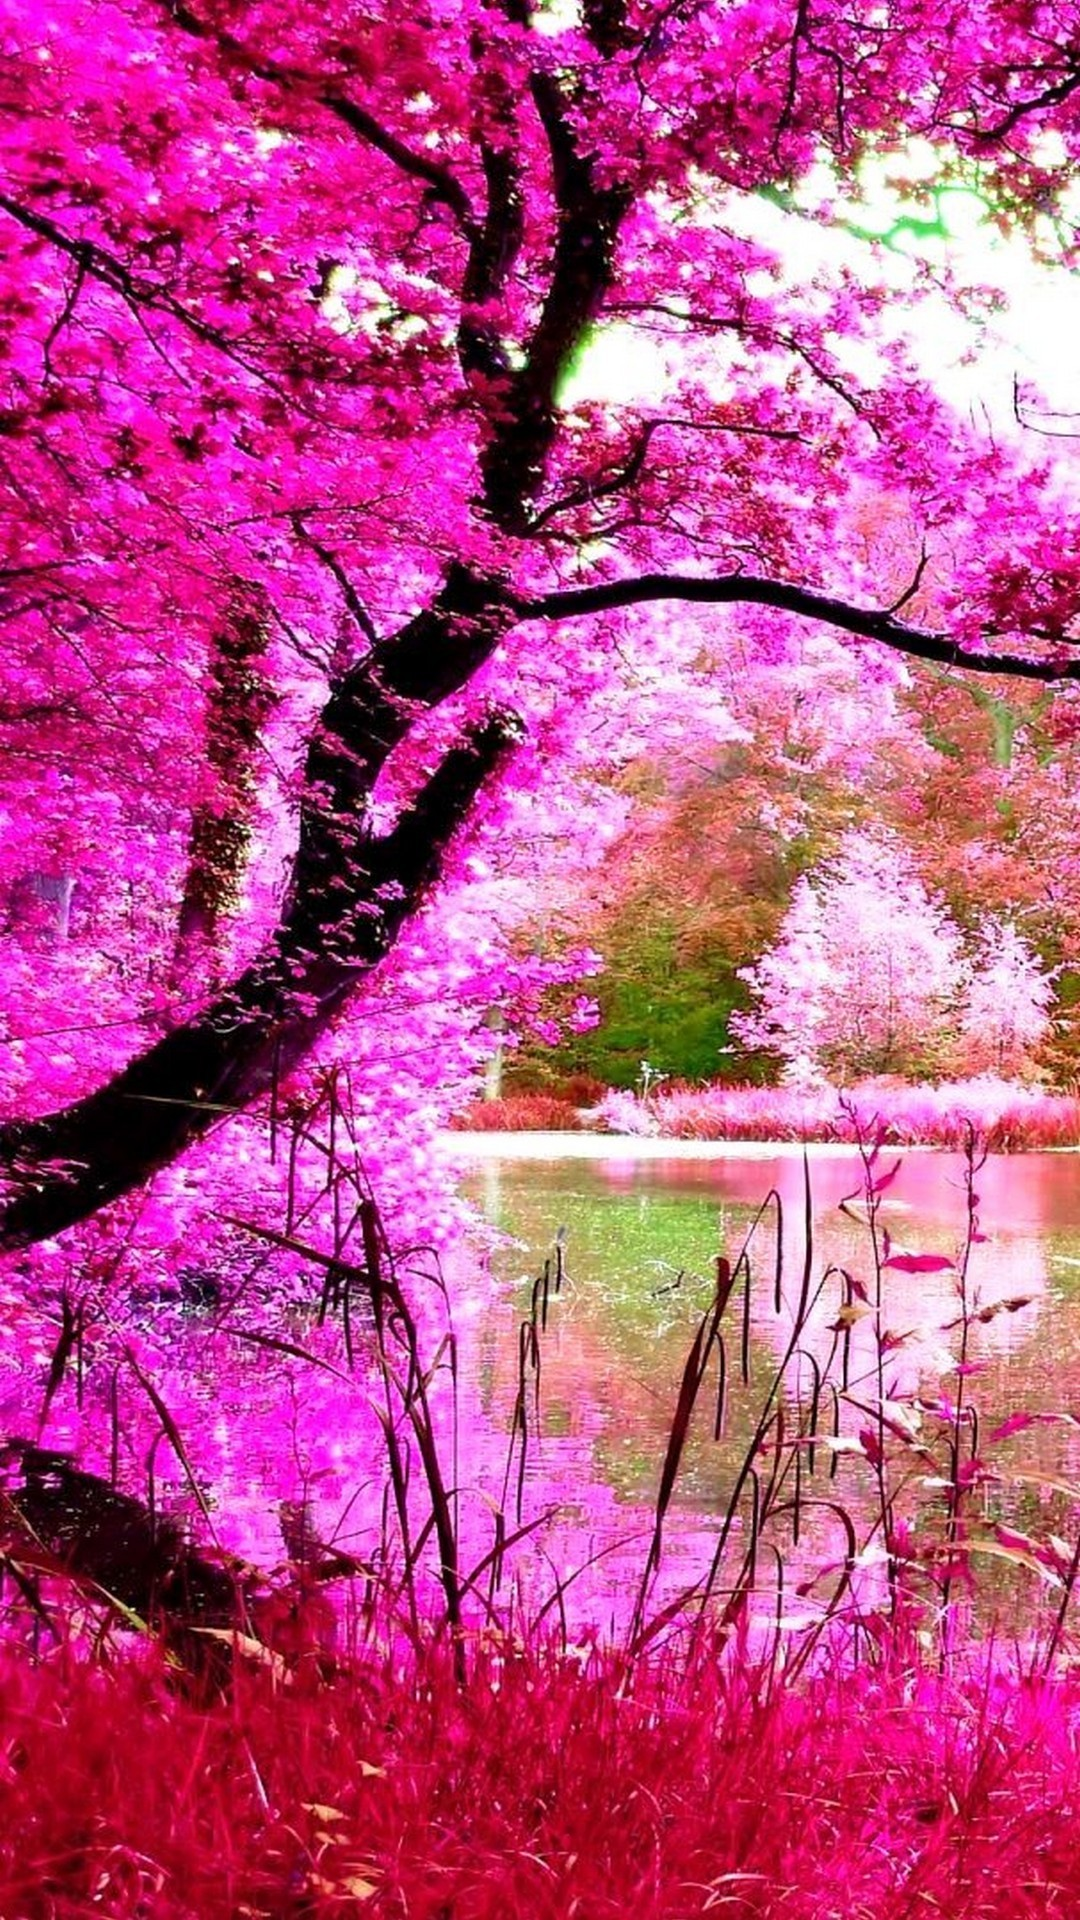 Fall Flowers Wallpaper Desktop Pink Nature Wallpaper 53 Images